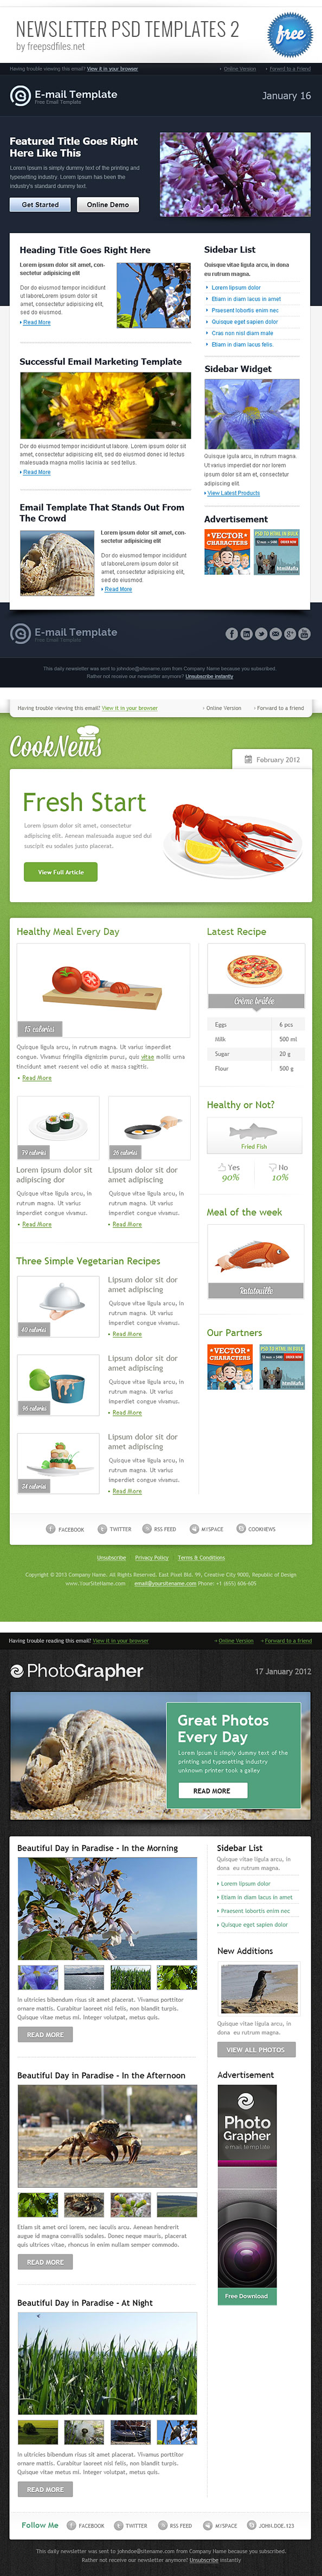 Newsletter PSD Template Set